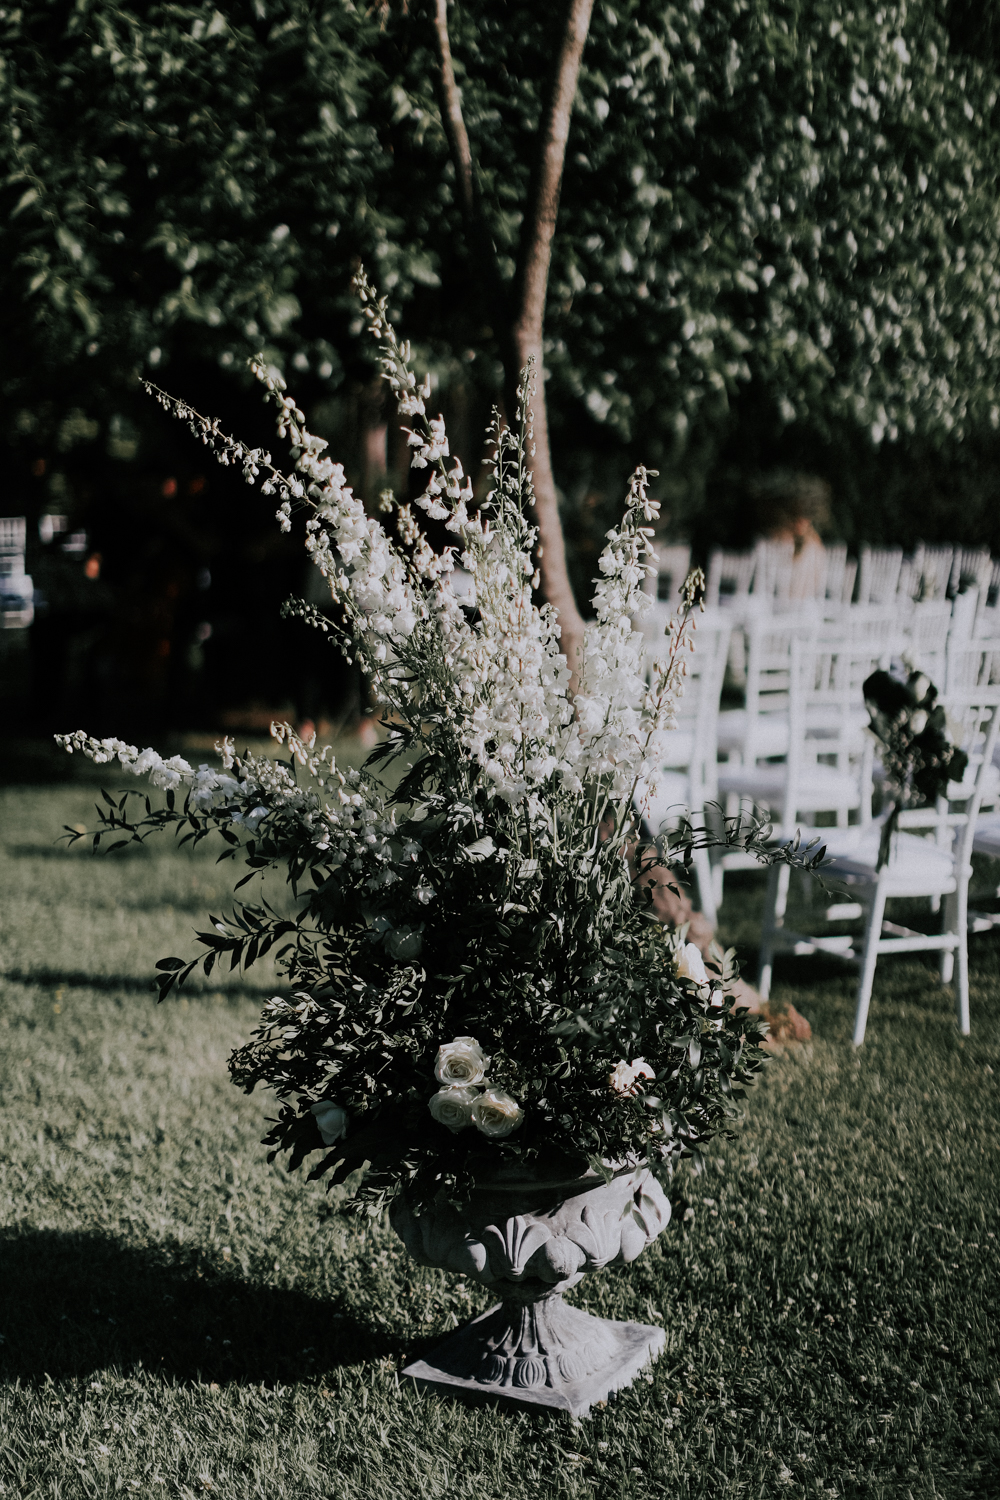 https://www.weddingamalfi.com/wp-content/uploads/Alessandro-and-Diego-wedding-flowers-in-the-garden.jpg